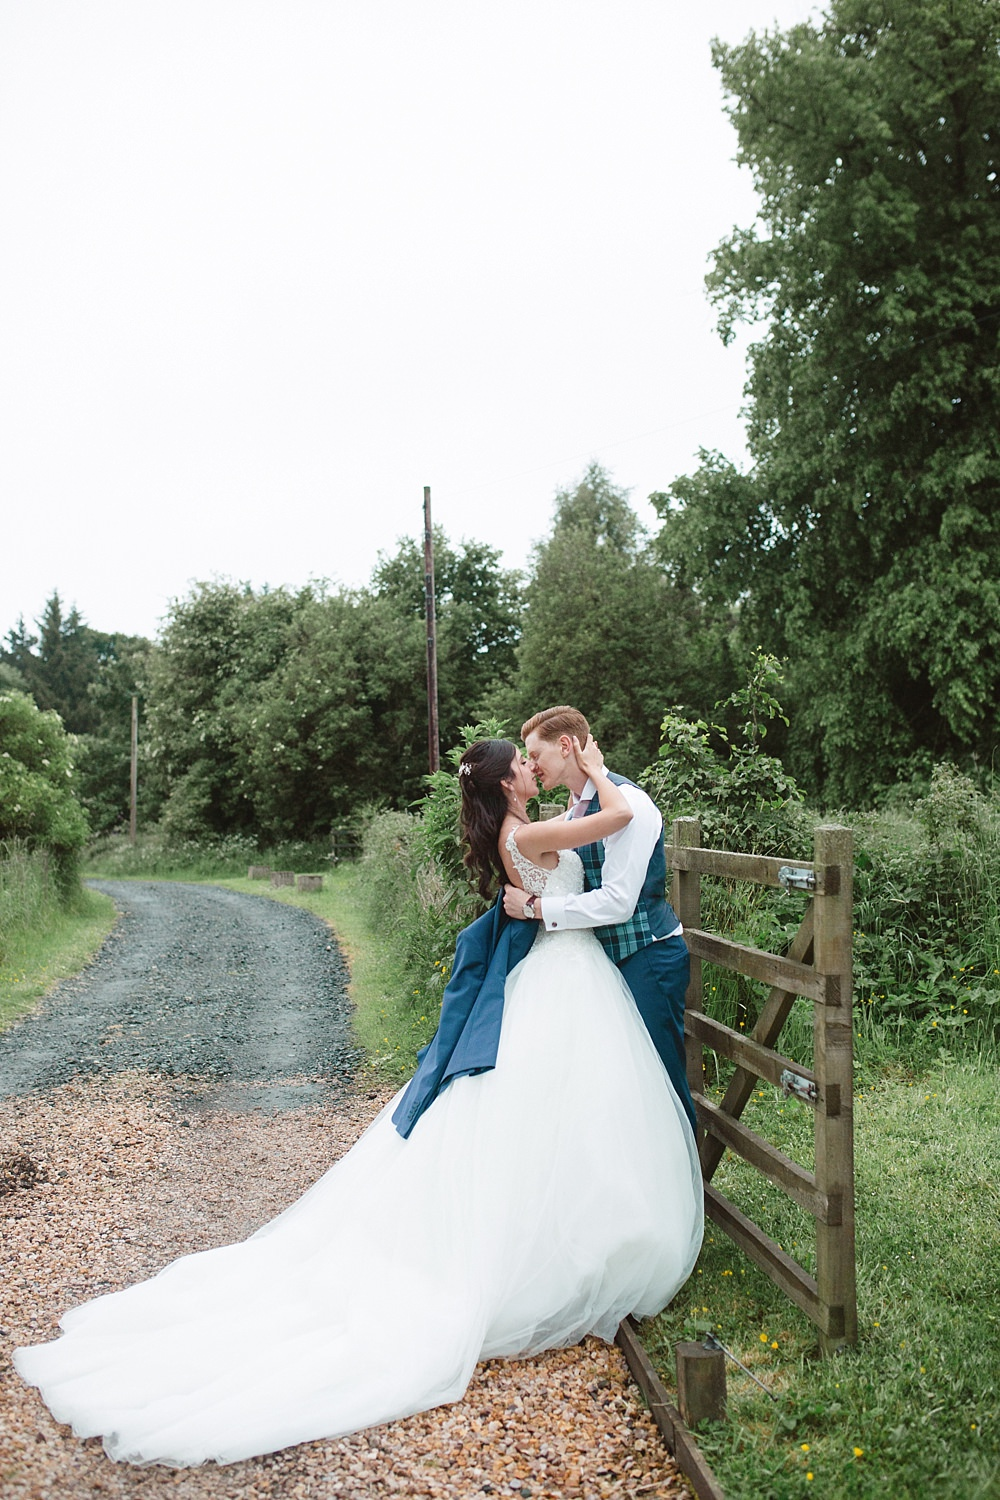 wedding-newton-mearns-glenbervie-58-17